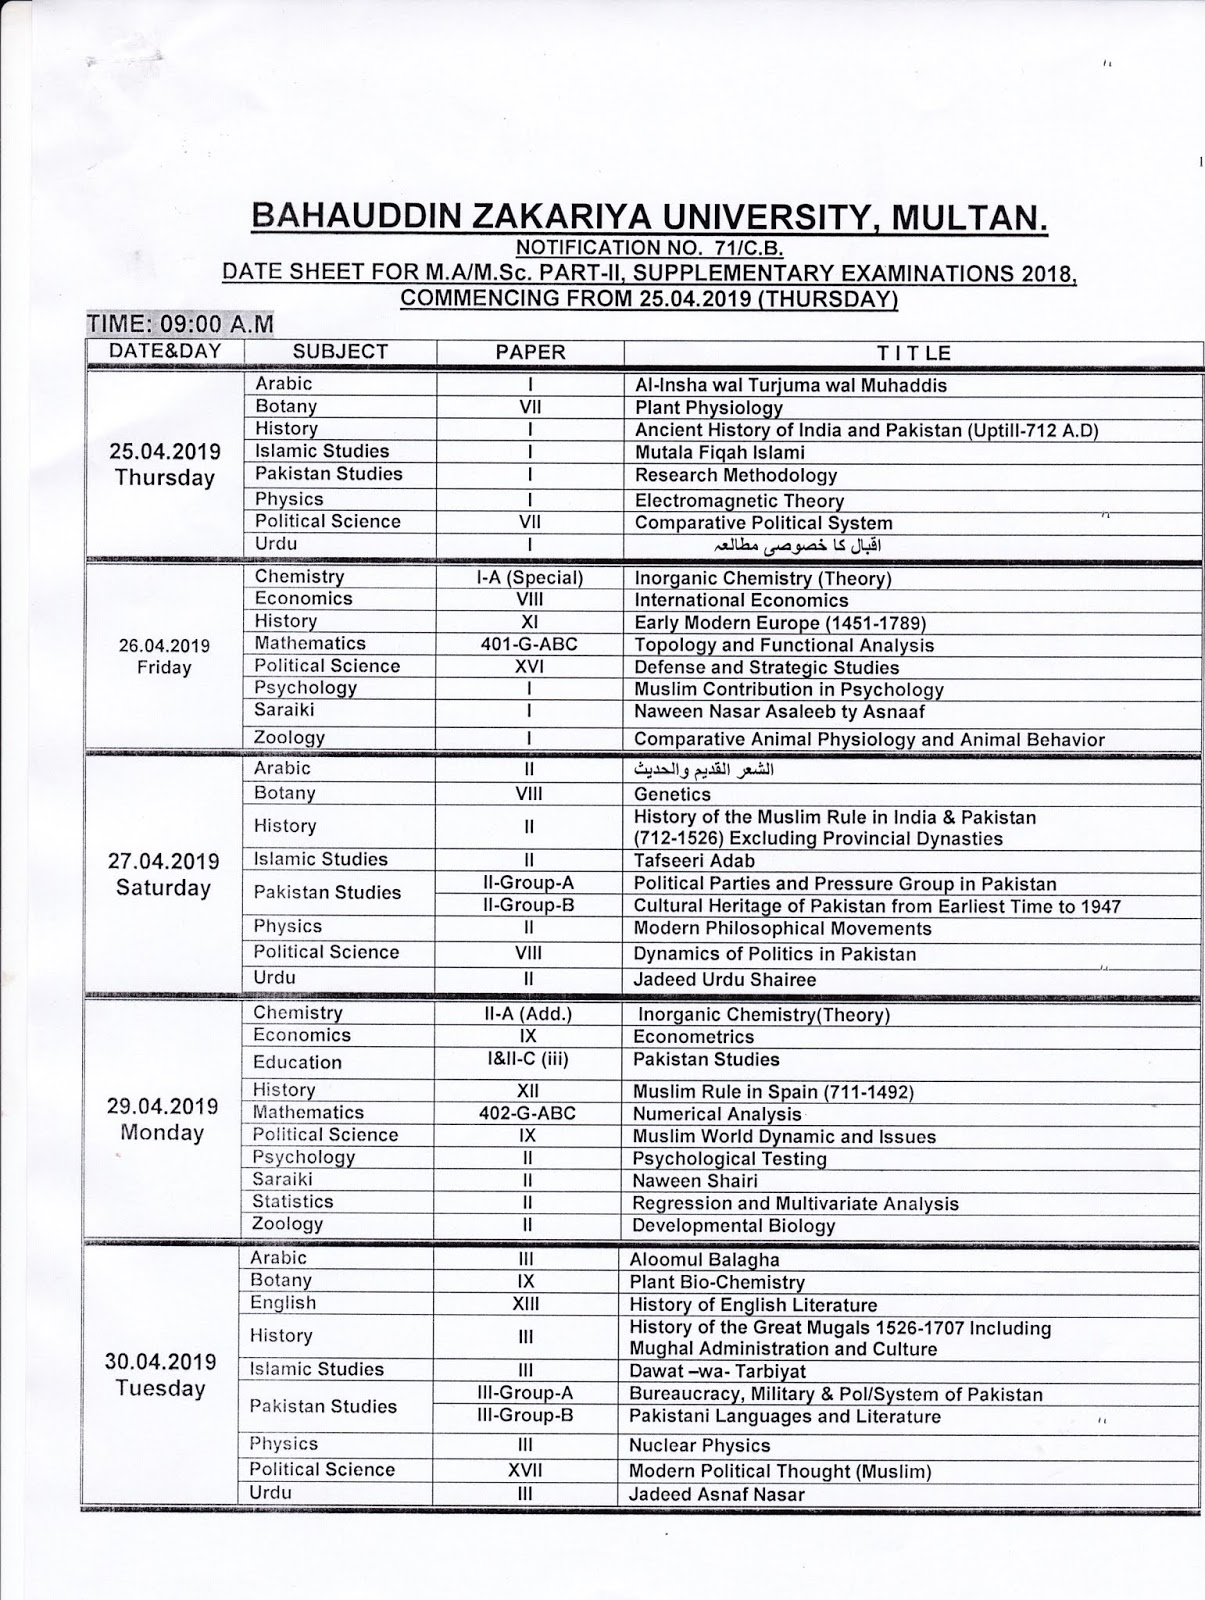 BZU MULTAN MA/MSC (PART II ) DATE SHEET SUPPLEMENTARY EXAMS